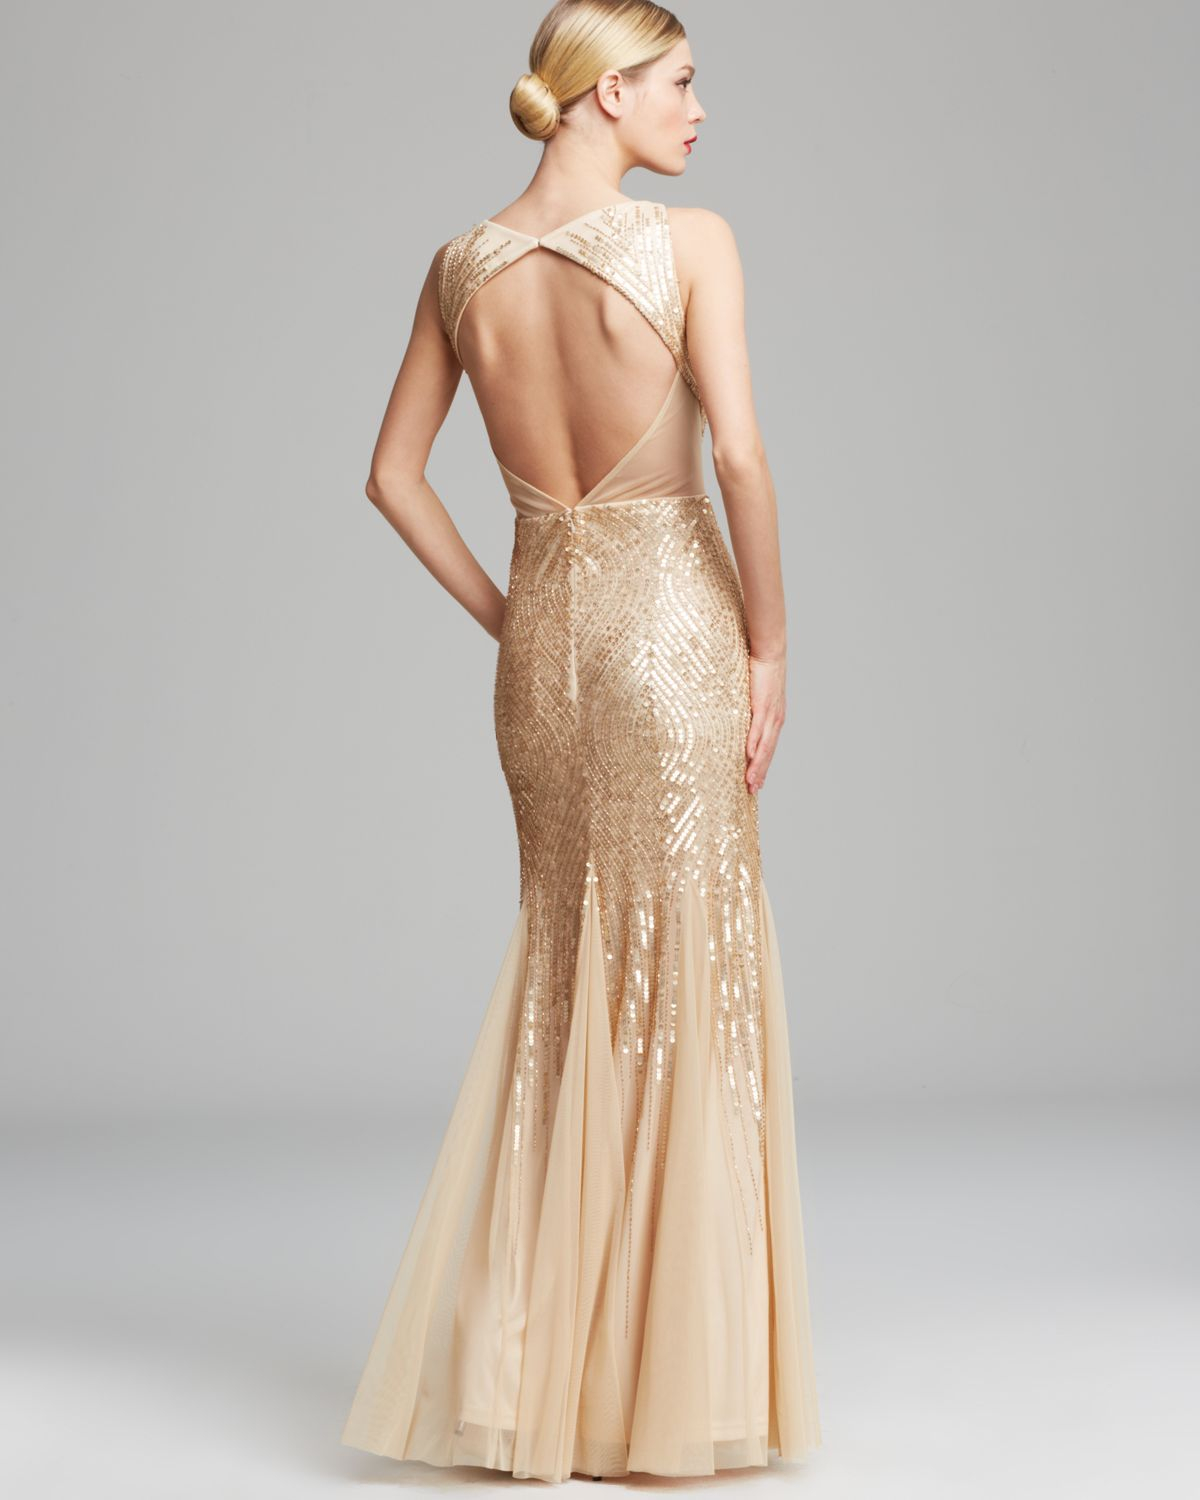 Lyst - Adrianna Papell Gown Sleeveless V Neck Beaded with Illusion ...